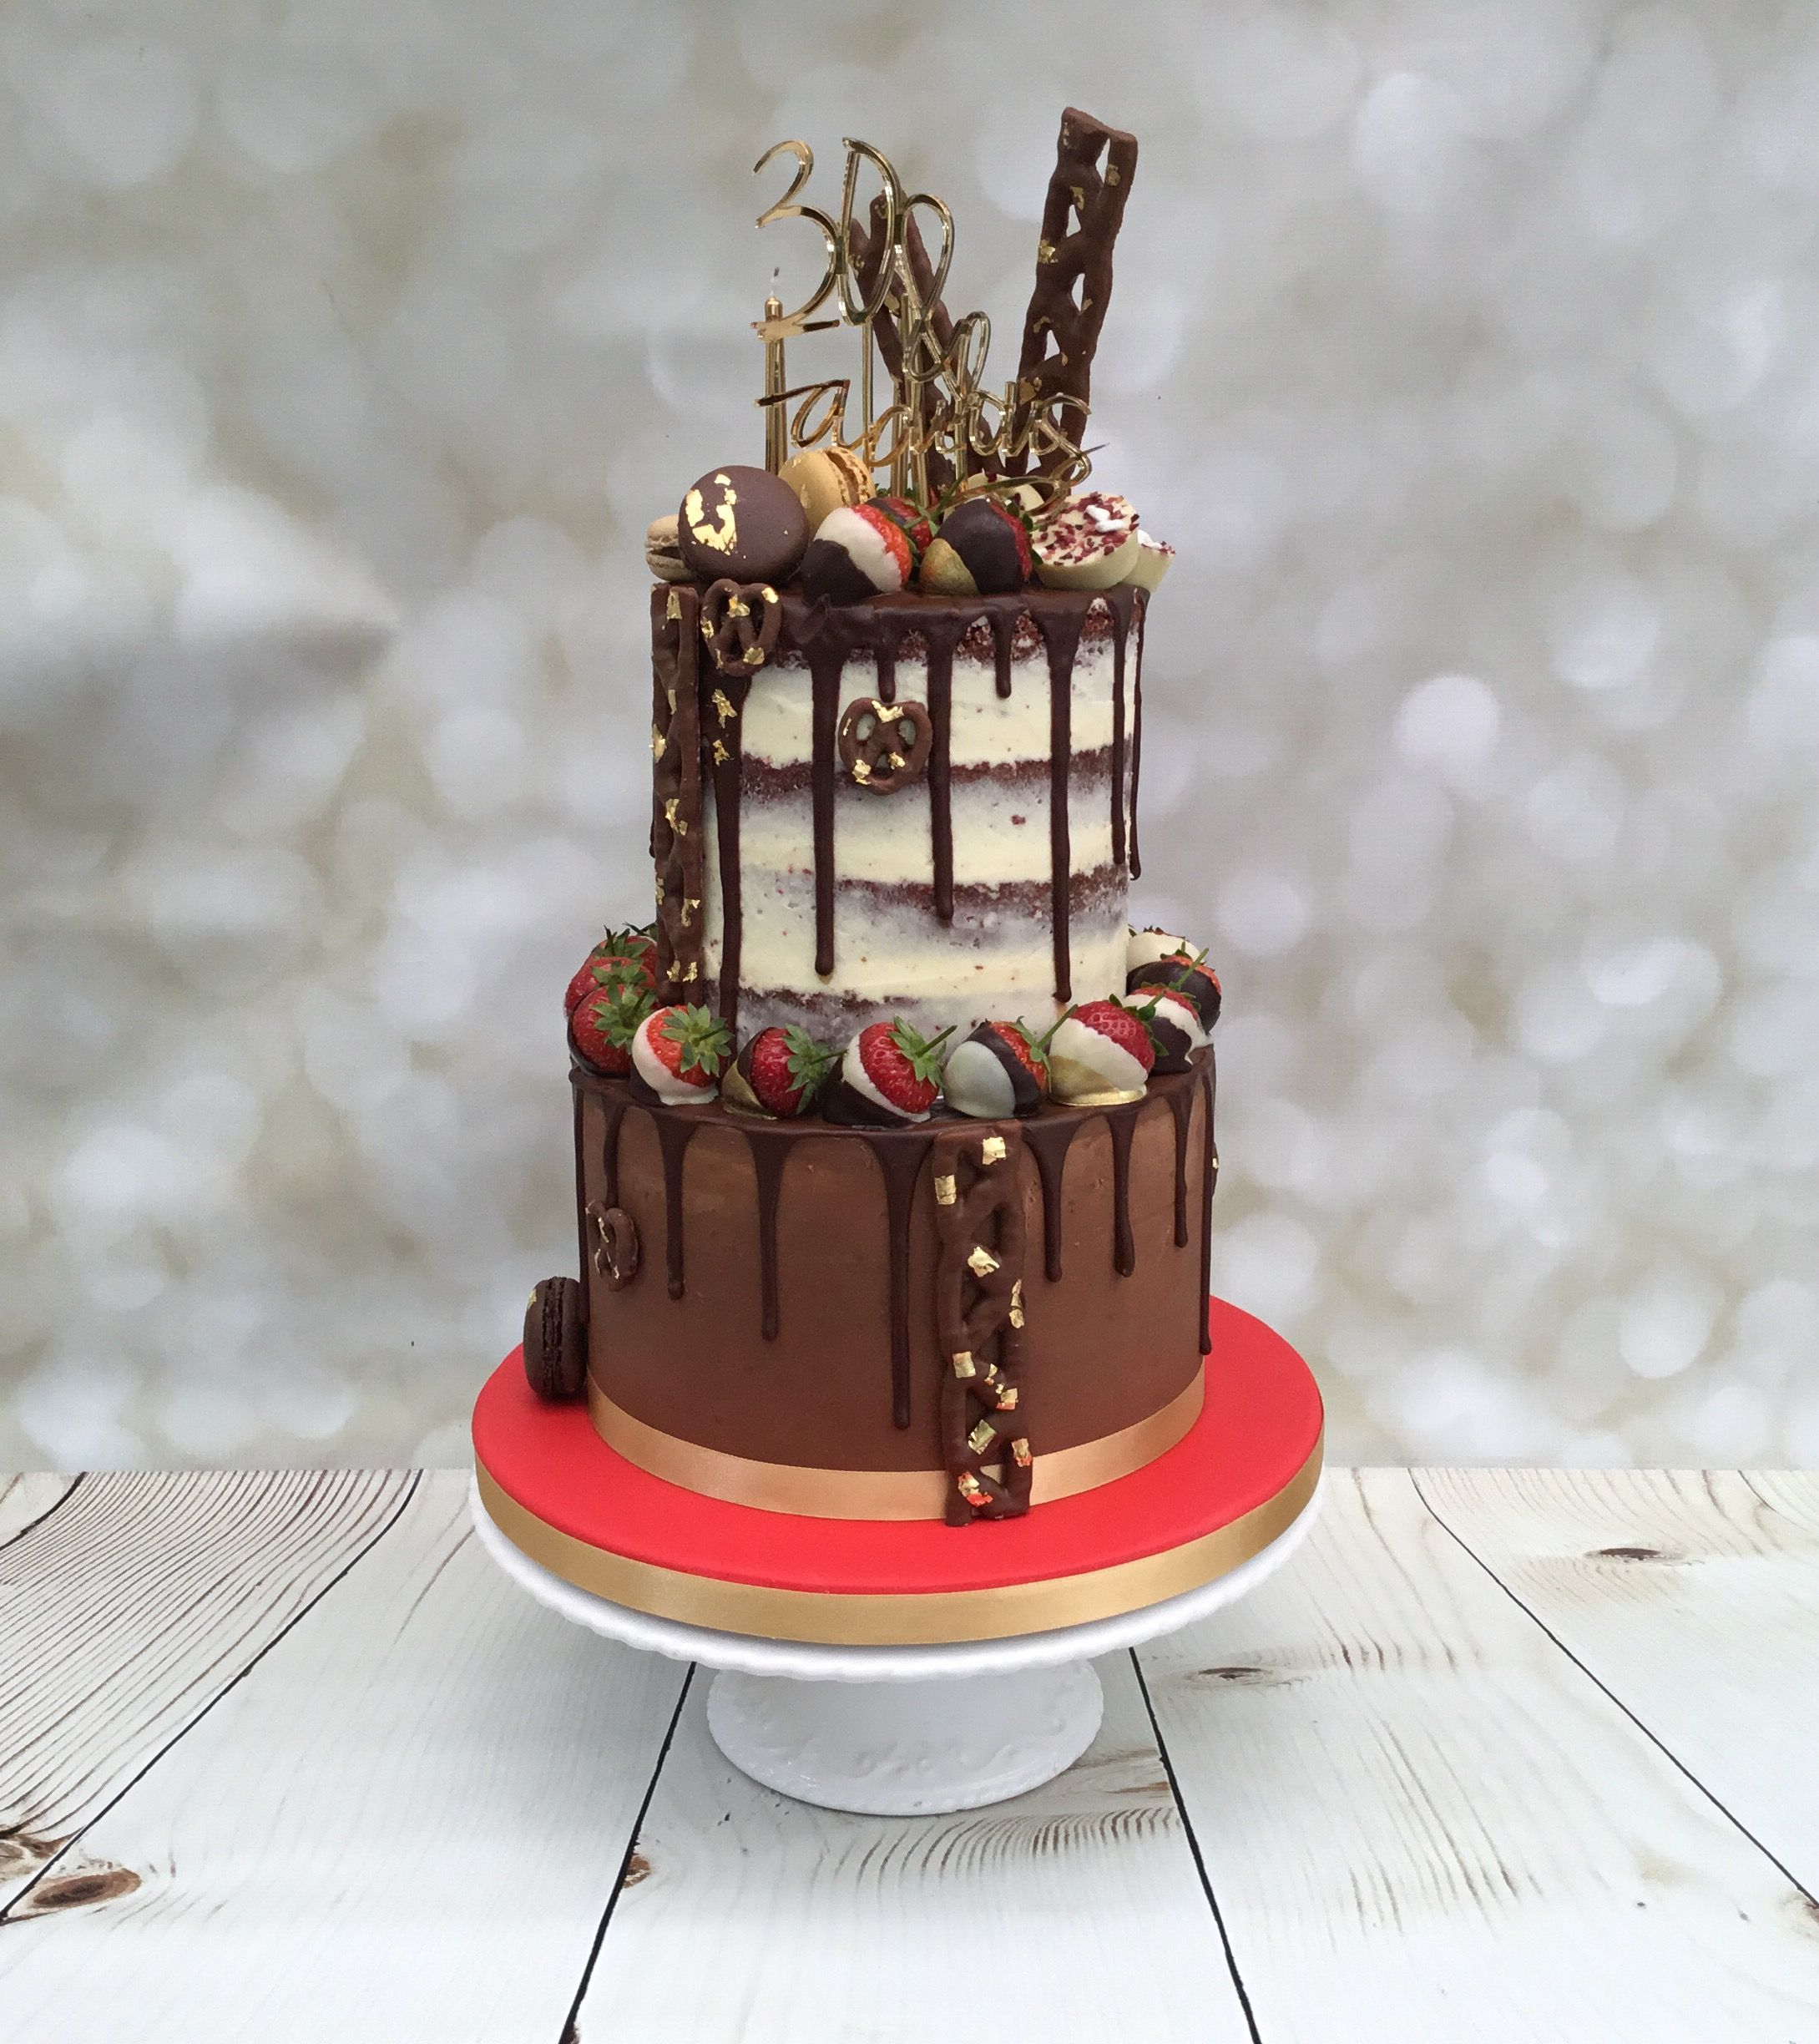 '30 & Fabulous!' Two Tier 'Naked' Chocolate Birthday Cake